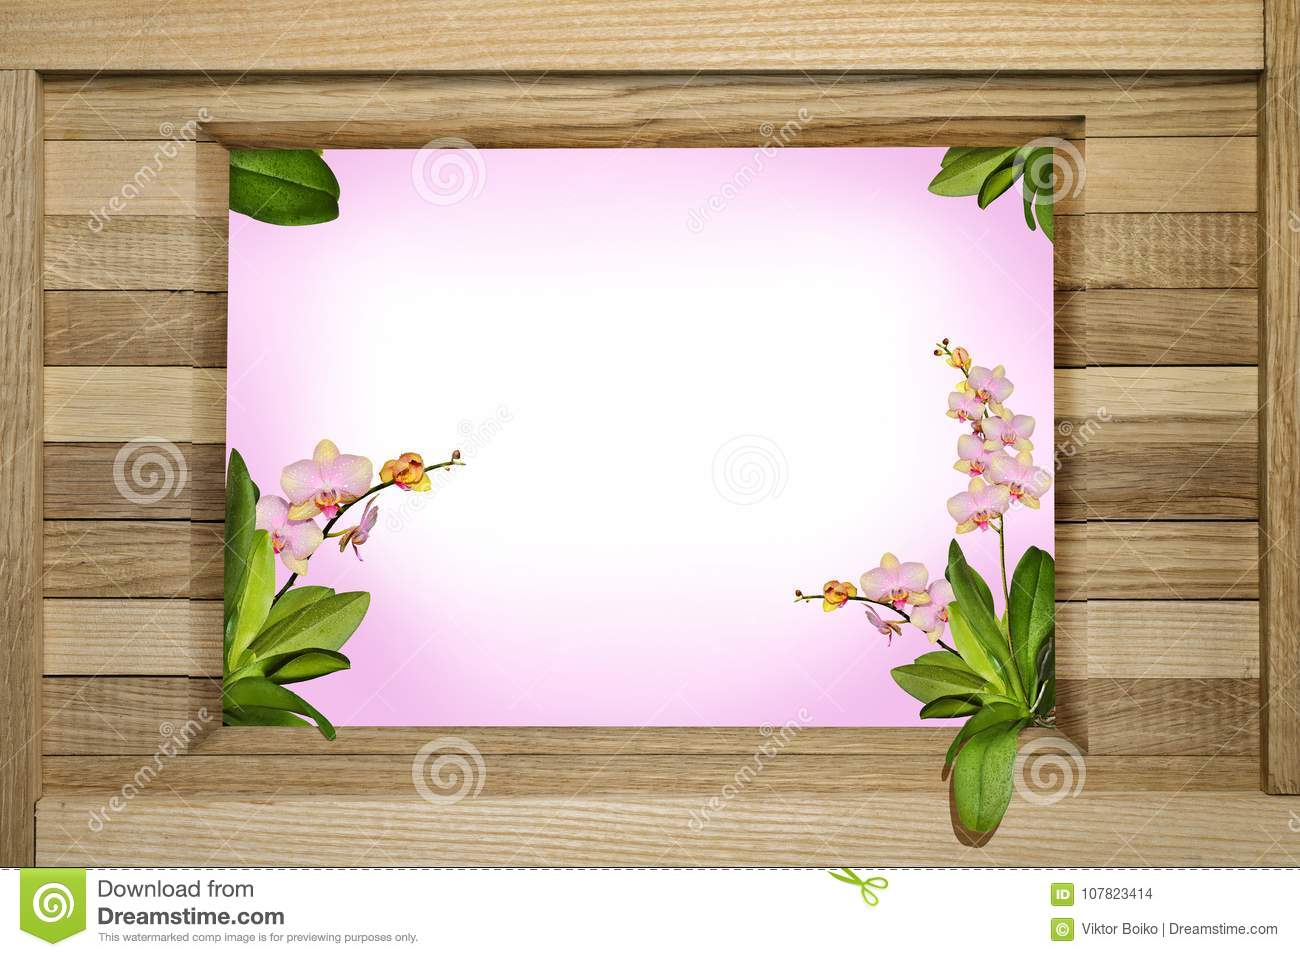 Wooden Greeting Frame With Orchids Stock Photo - Image of postcard ...